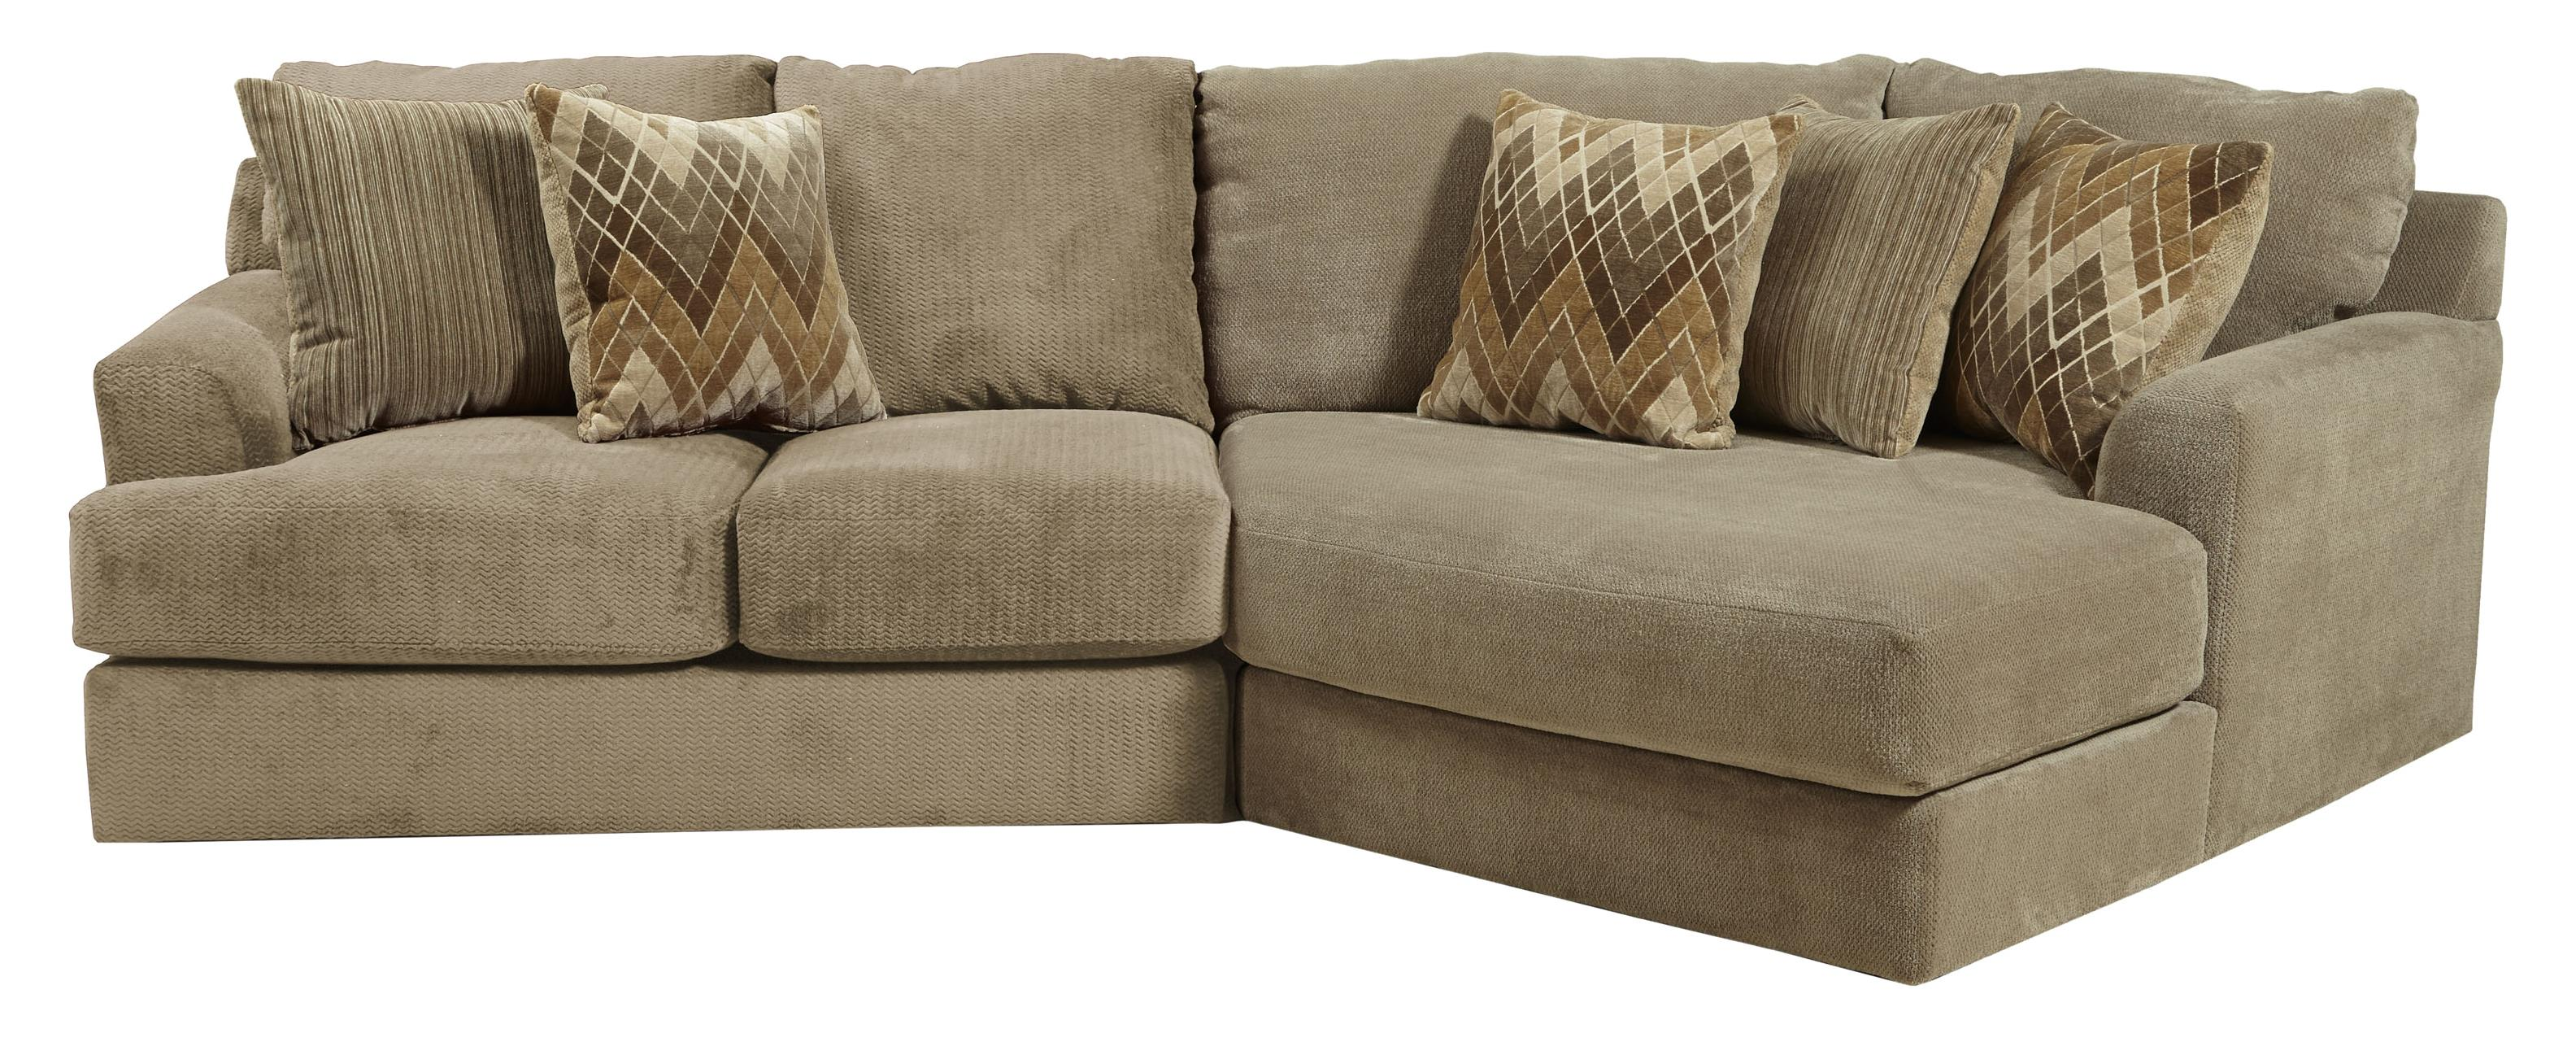 Small three seat sectional sofa by jackson furniture for Jackson furniture sectional sofa